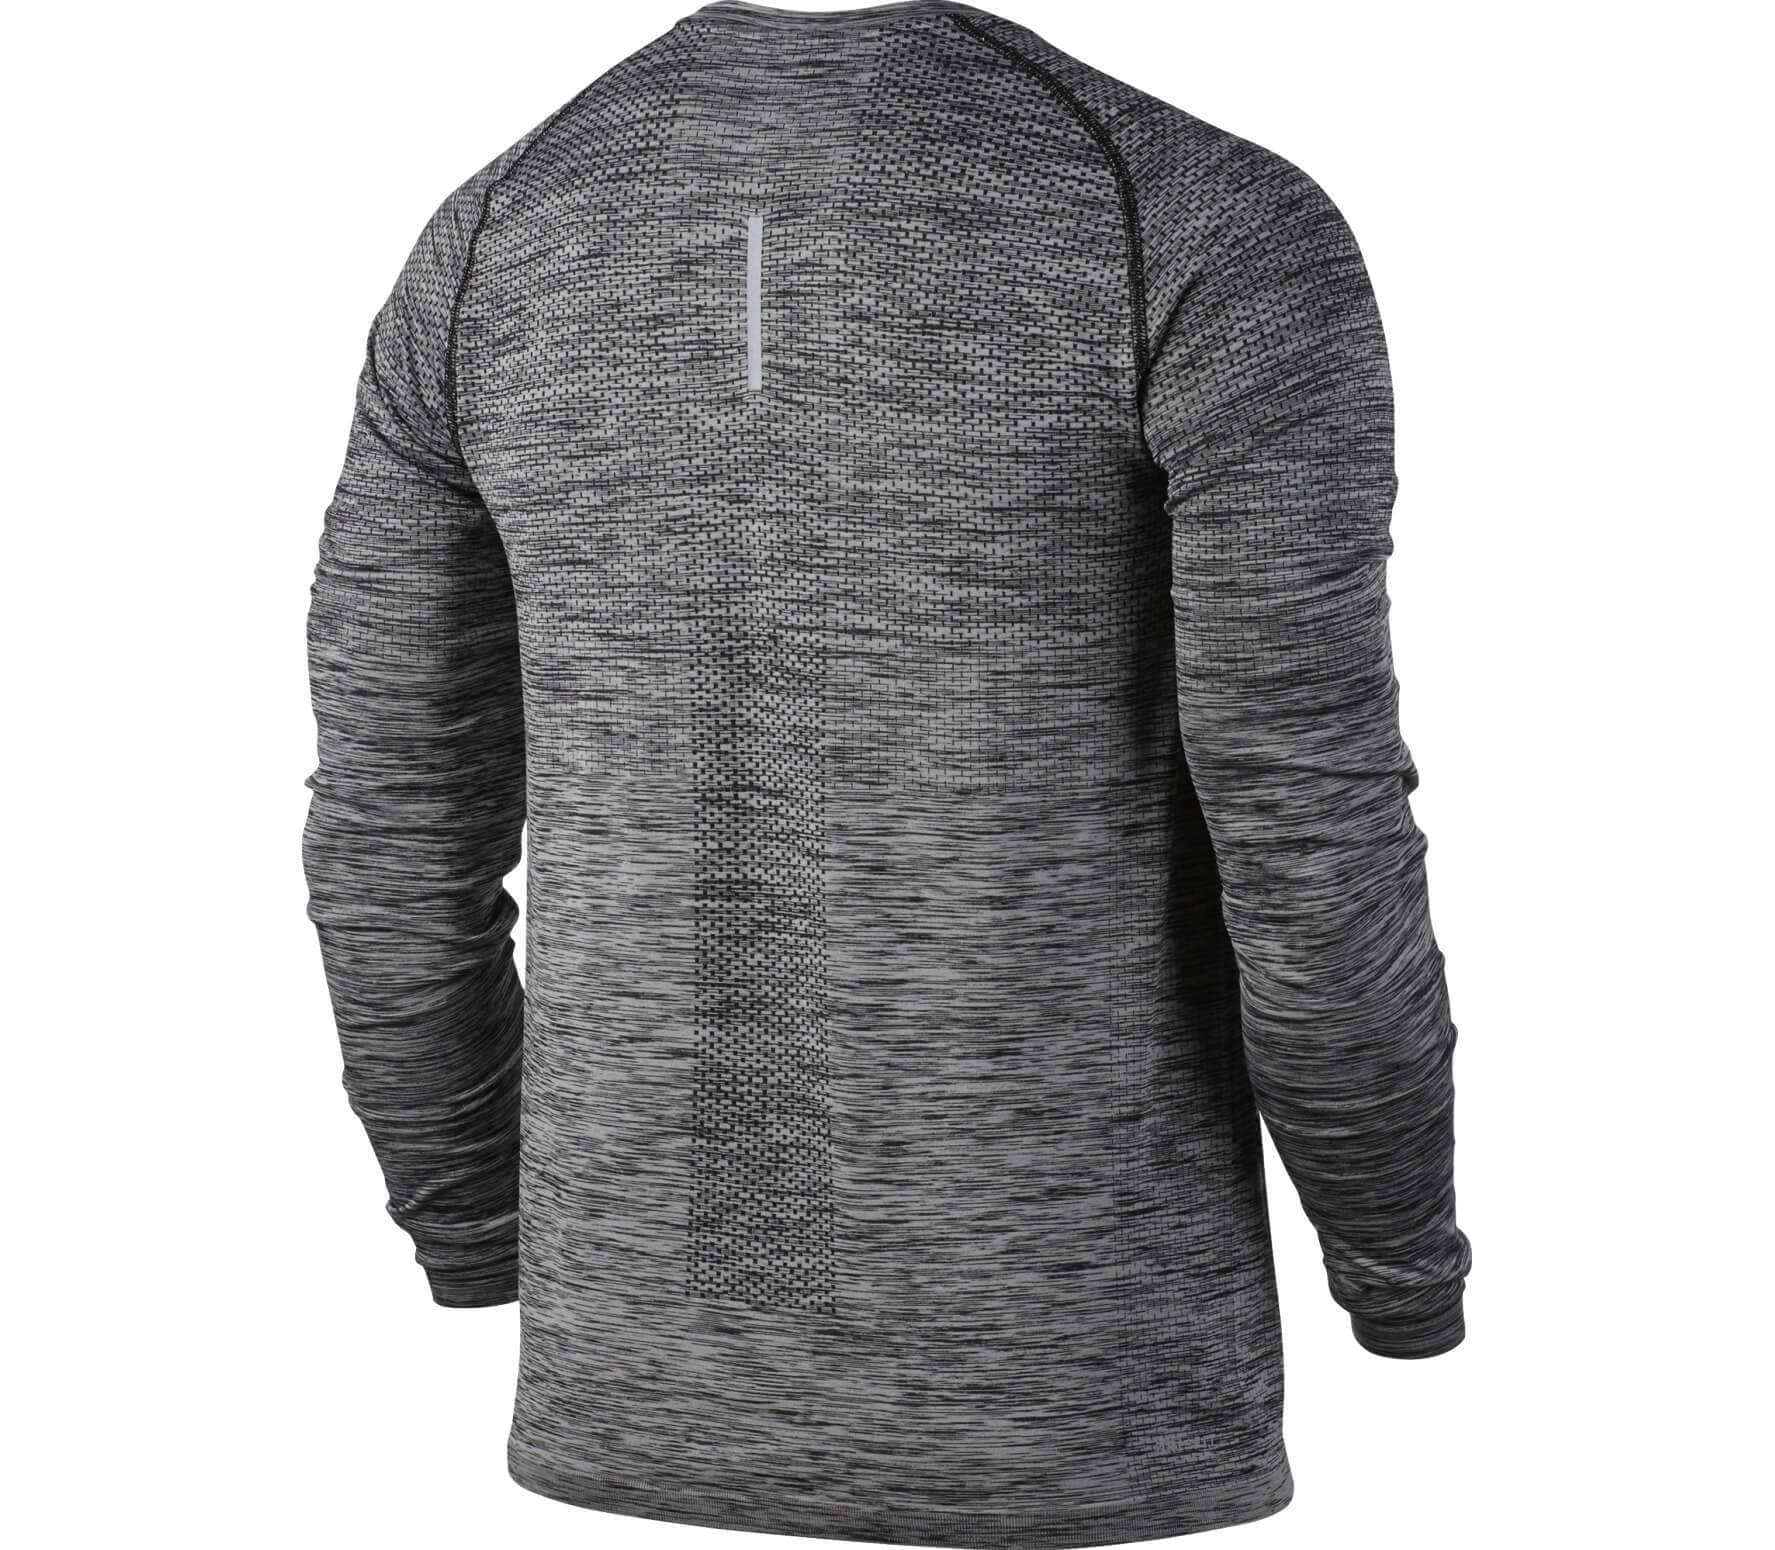 nike dri fit knit longsleeve men 39 s running top grey. Black Bedroom Furniture Sets. Home Design Ideas